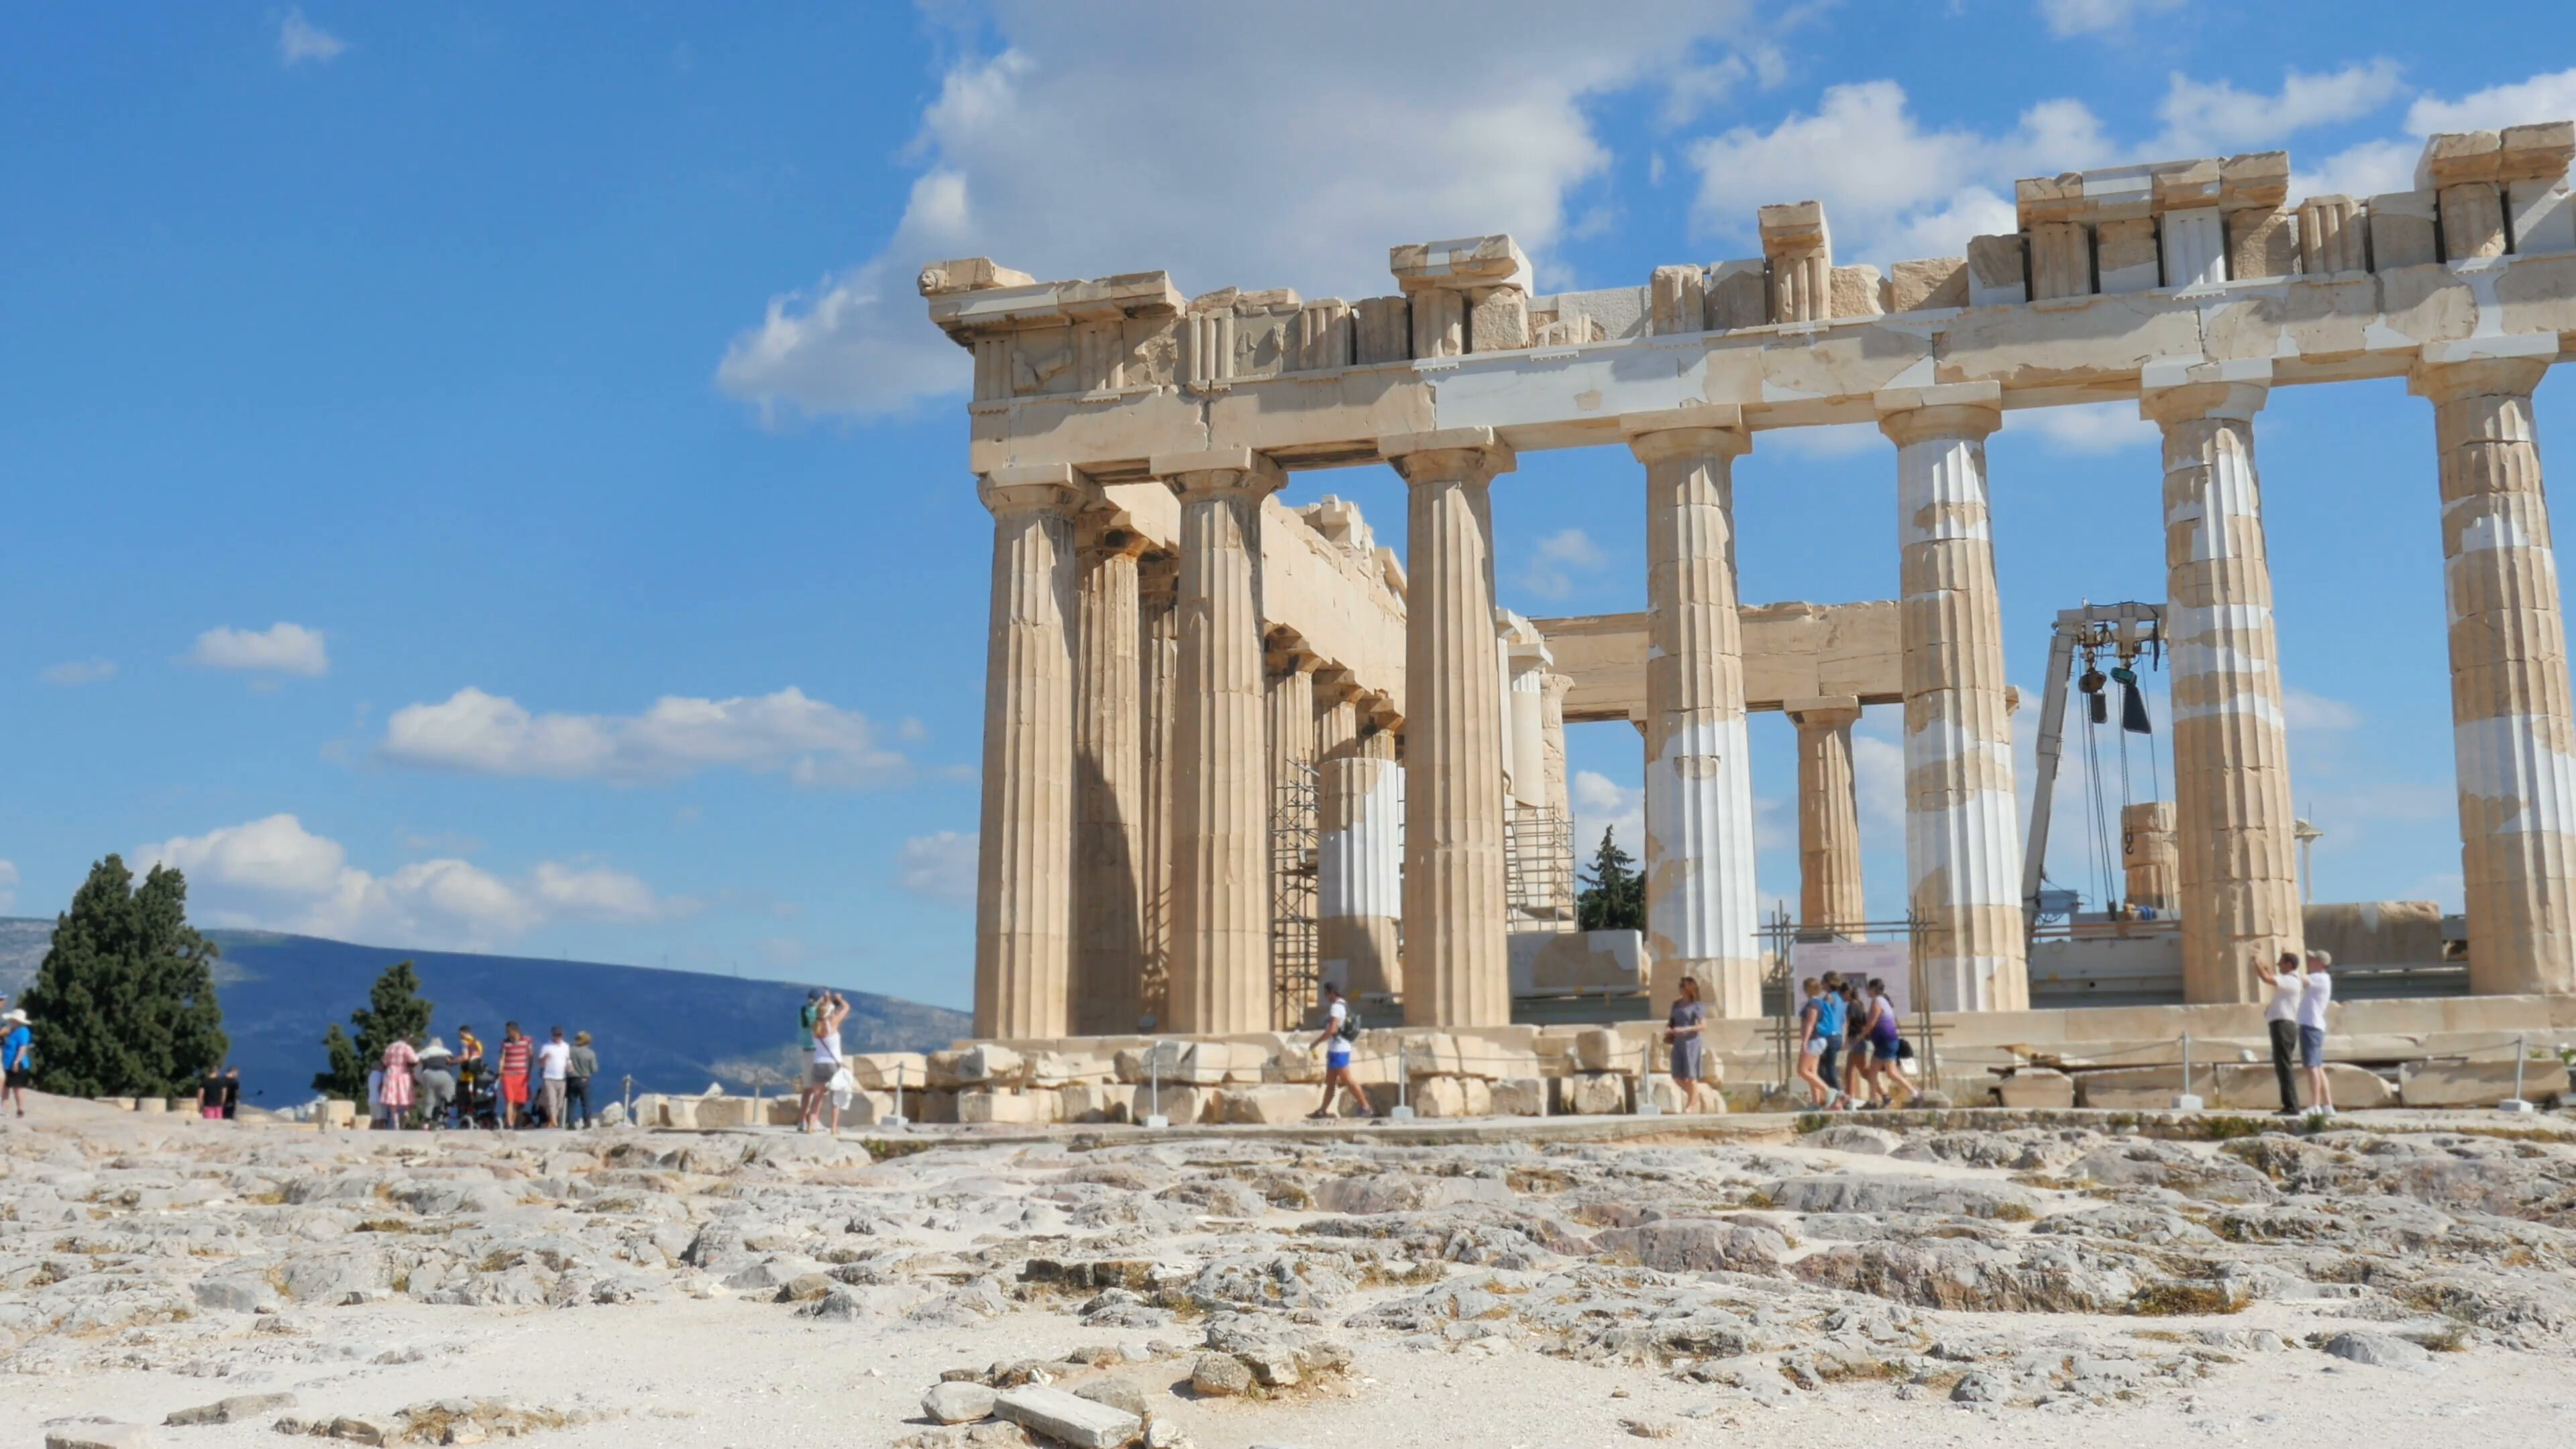 Acropolis of Athens Tourist Attractions in Greece